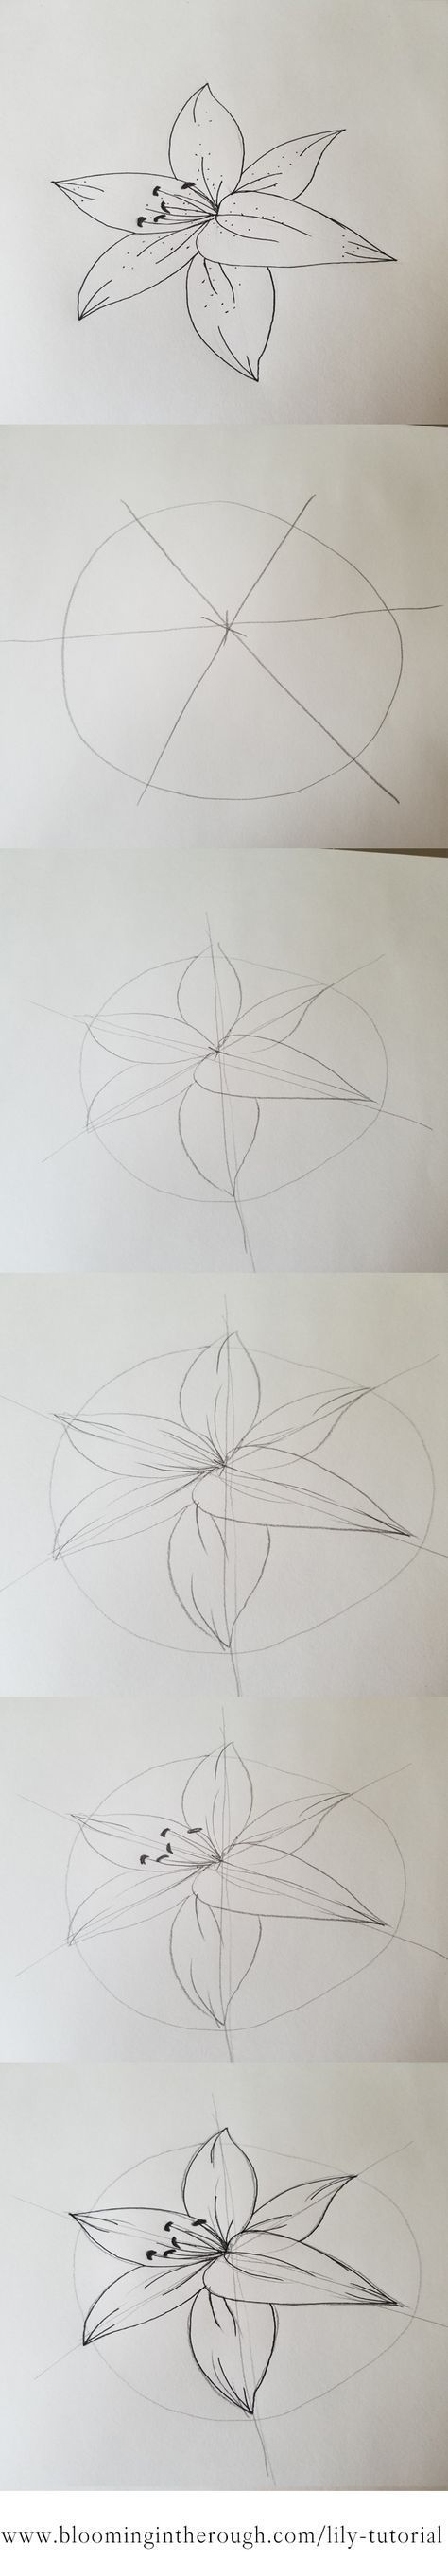 How to draw an easy Lily. Step by step guide tutorial with pictures and a free printable!